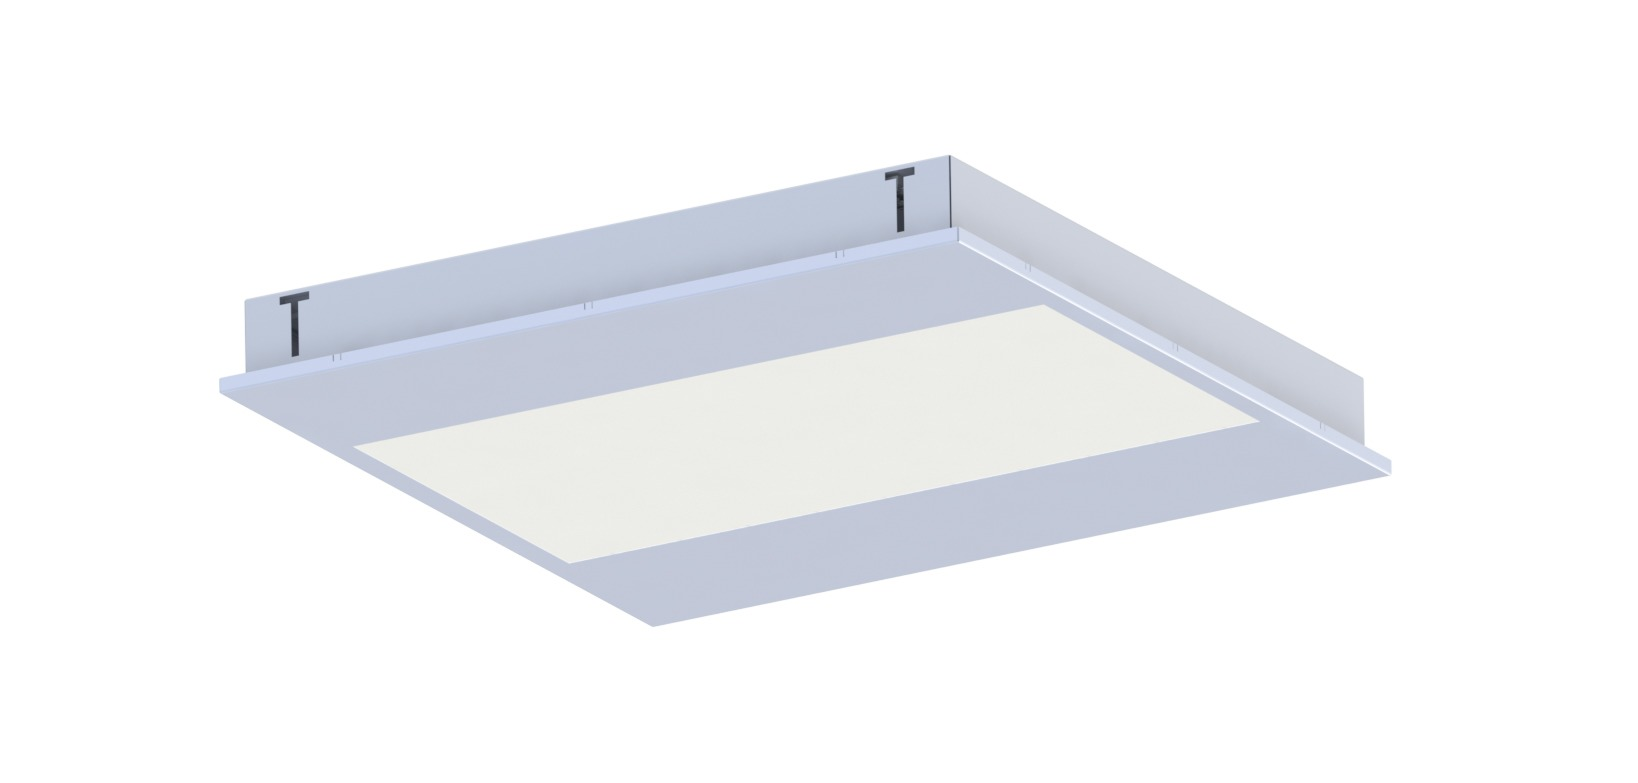 LED Panel_OLOT C__Octa Light_1638x783_fit_478b24840a